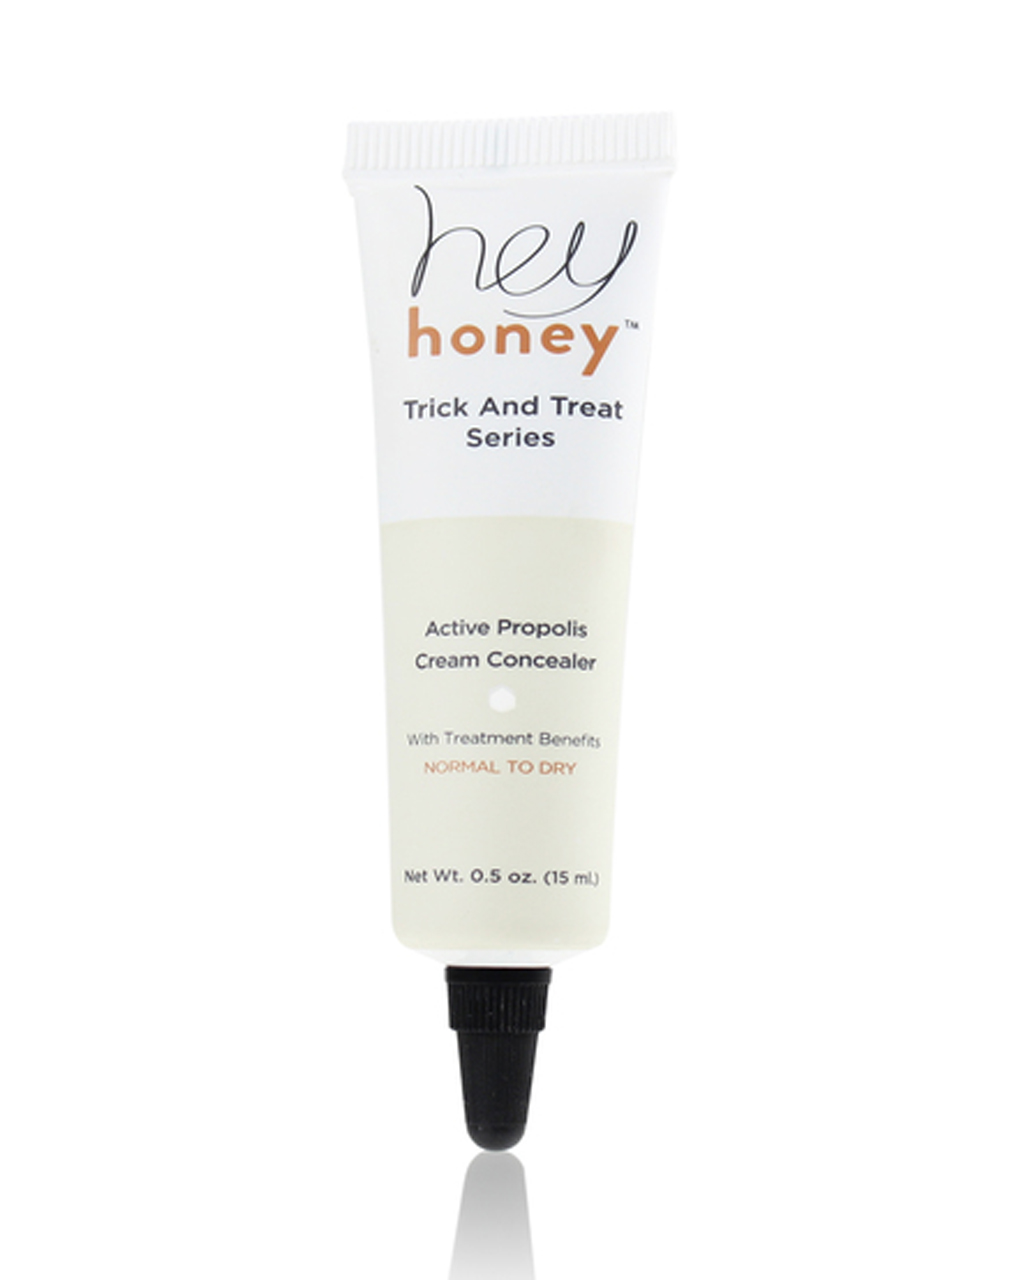 Hey Honey Trick And Treat Series Active Propolis Cream Concealer, .5 oz